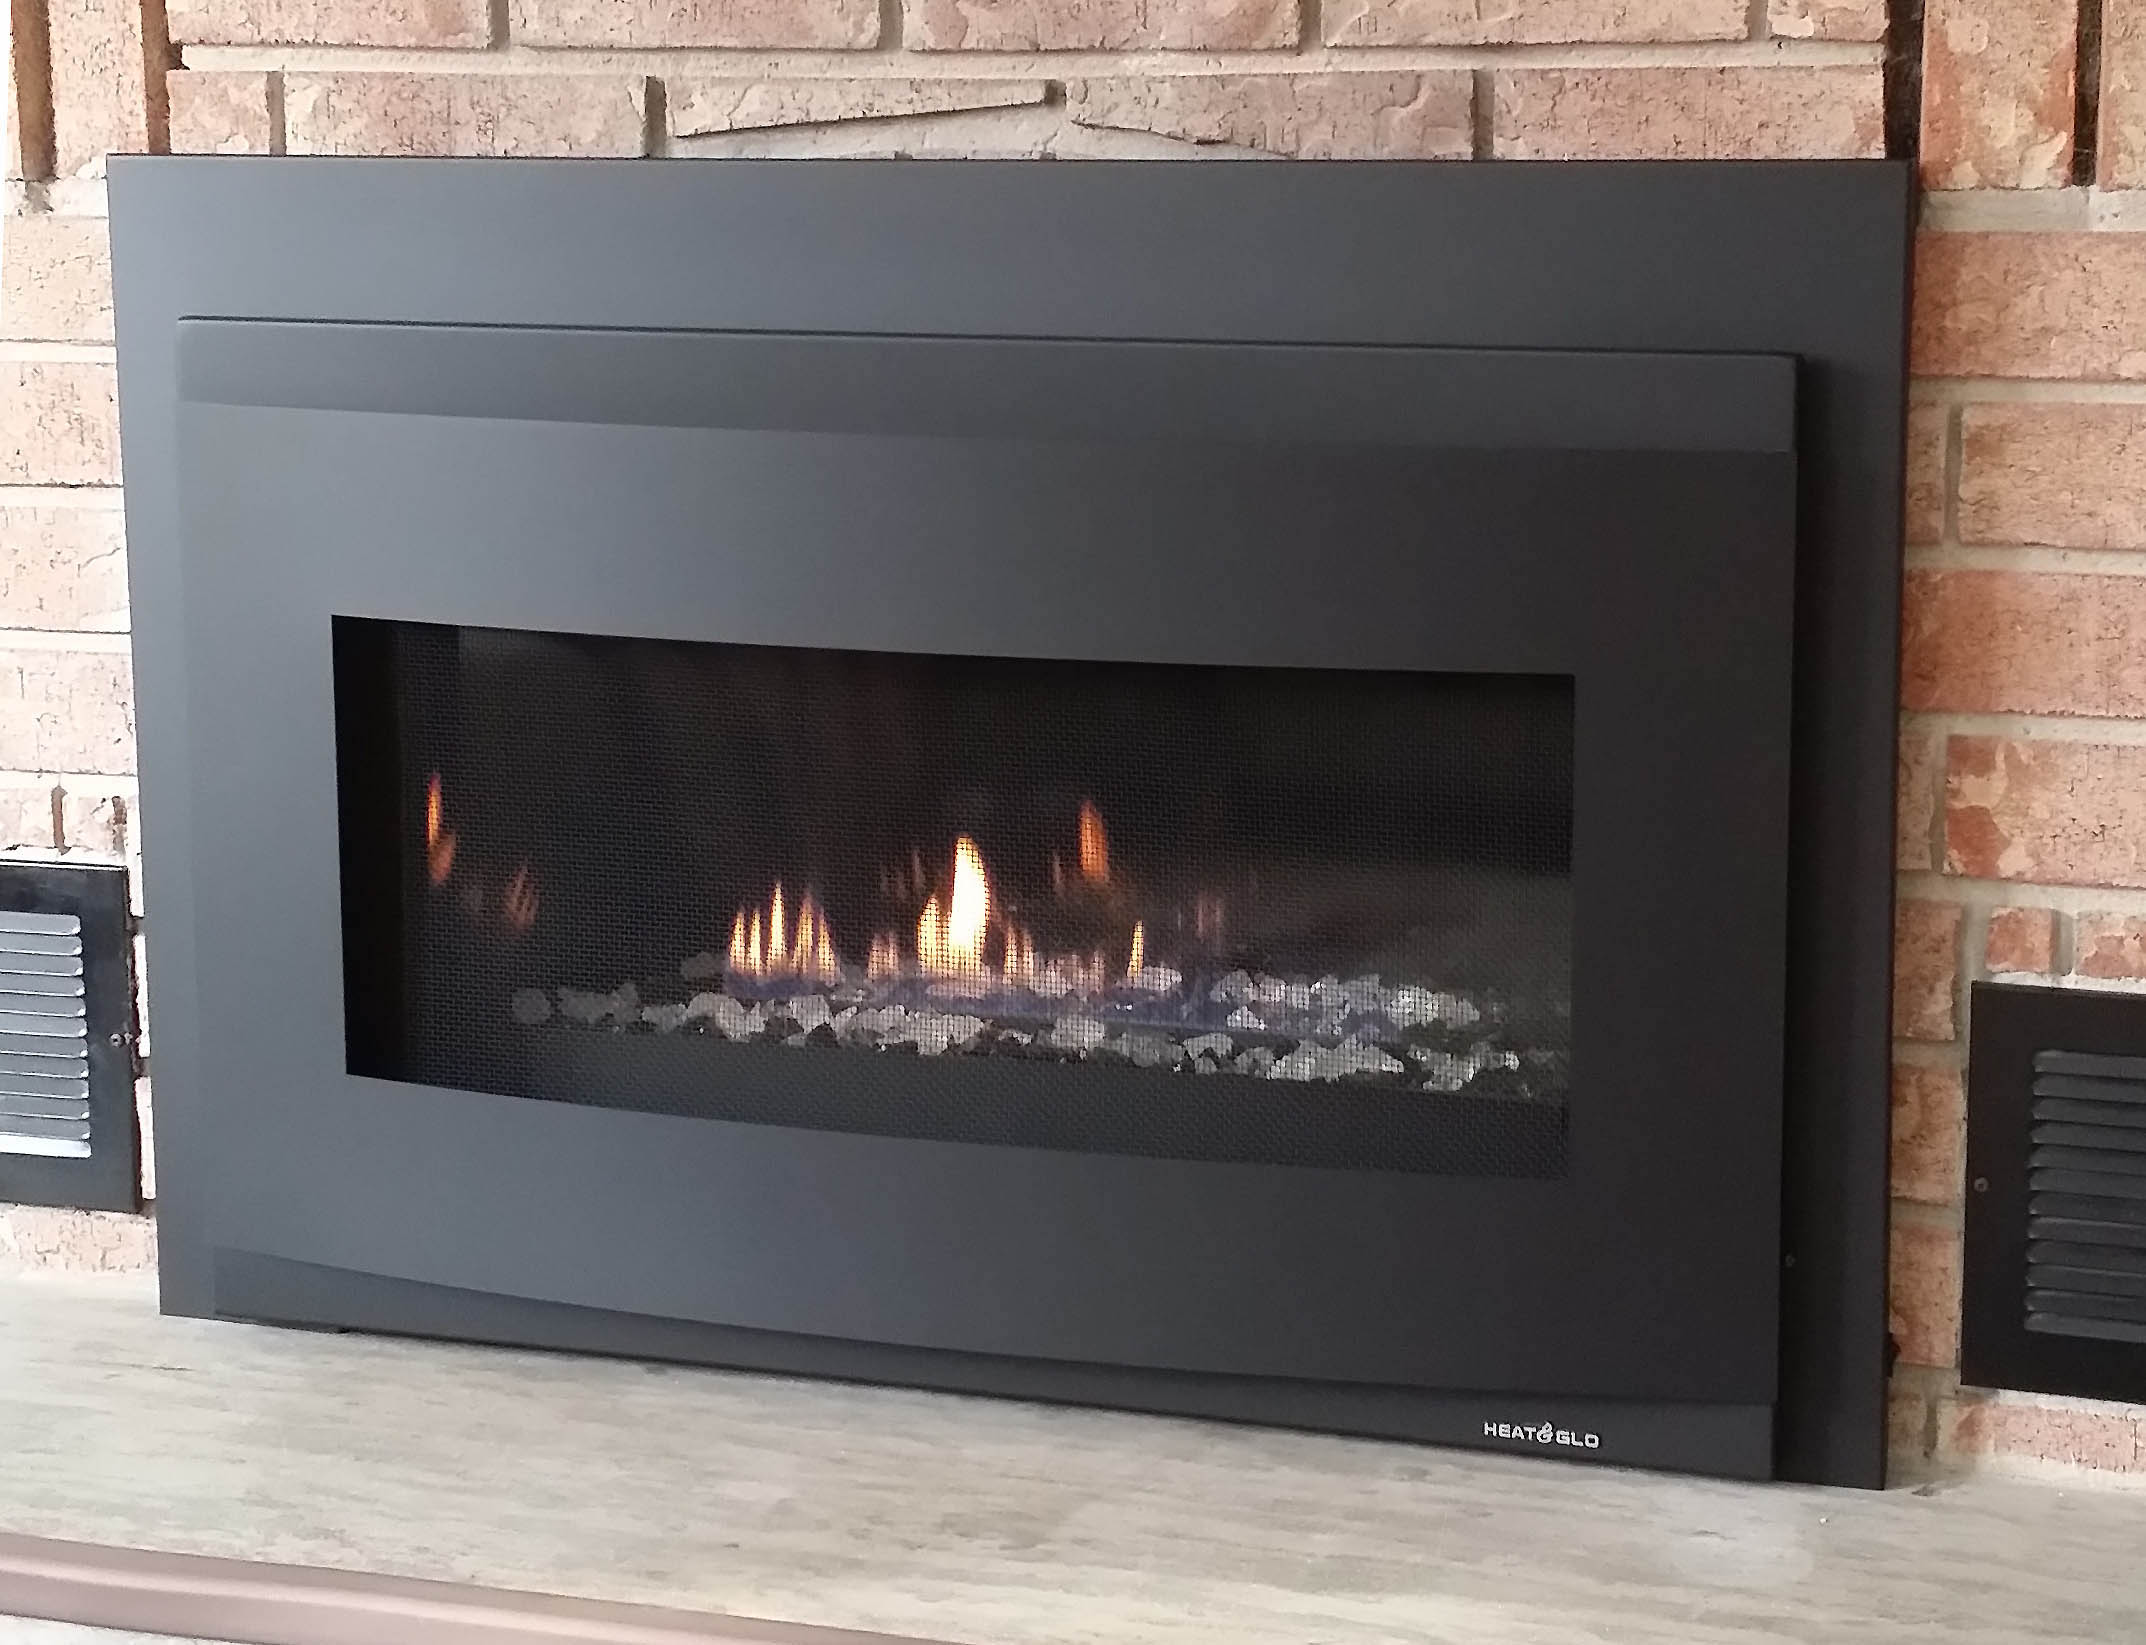 Heat & Glo Cosmo Gas Insert Archives - Gagnon Clay Products